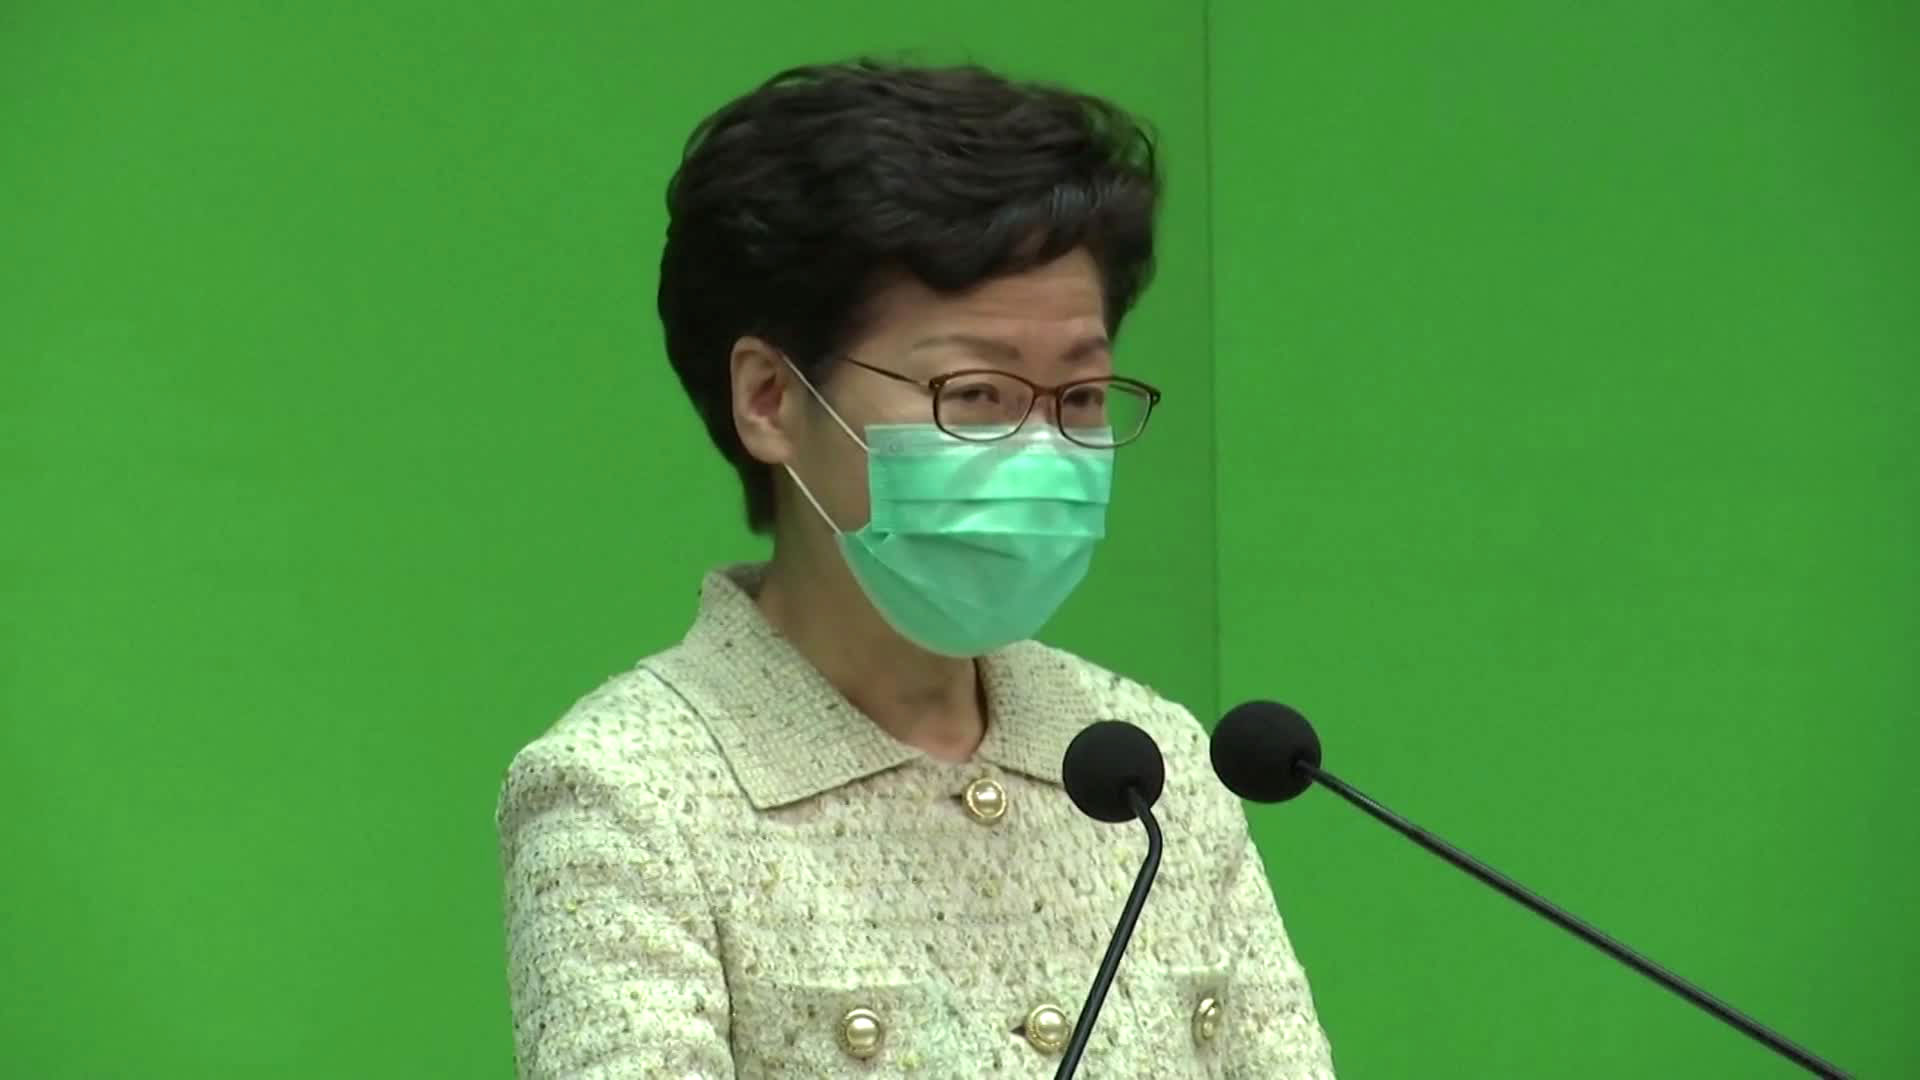 Hong Kong Chief Executive Carrie Lamspeaks at a news briefing on Monday.